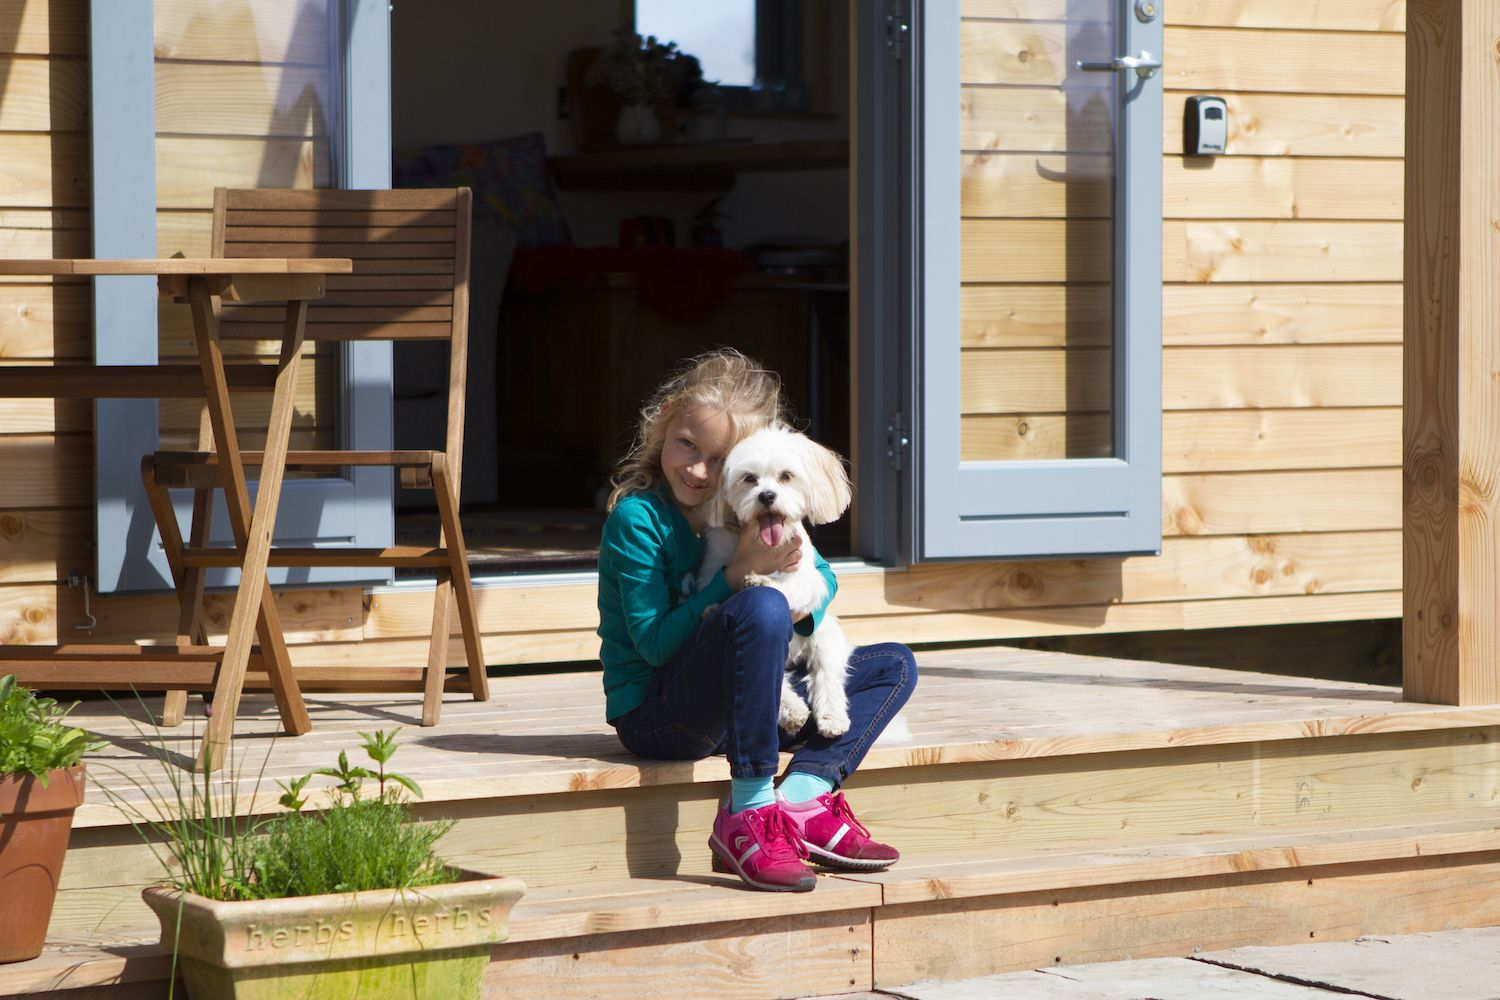 Dog-friendly holiday cottages - Cool Places to Stay in the UK